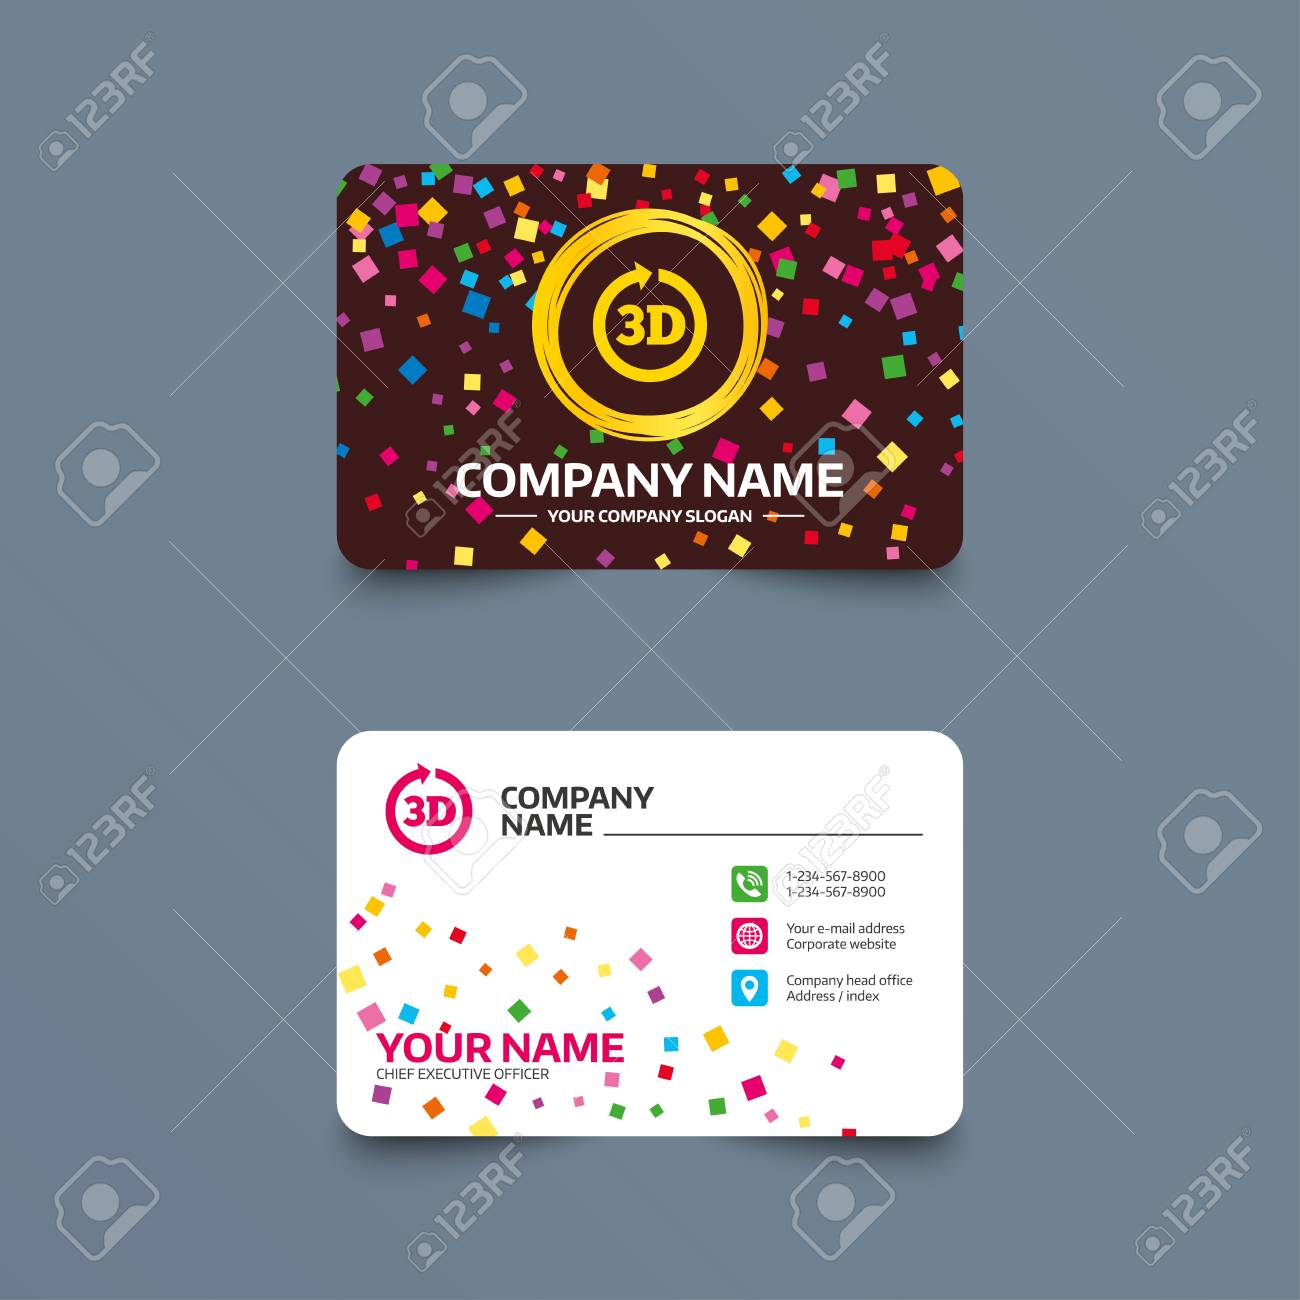 Business card template with confetti pieces 3d sign icon 3d business card template with confetti pieces 3d sign icon 3d new technology symbol cheaphphosting Gallery